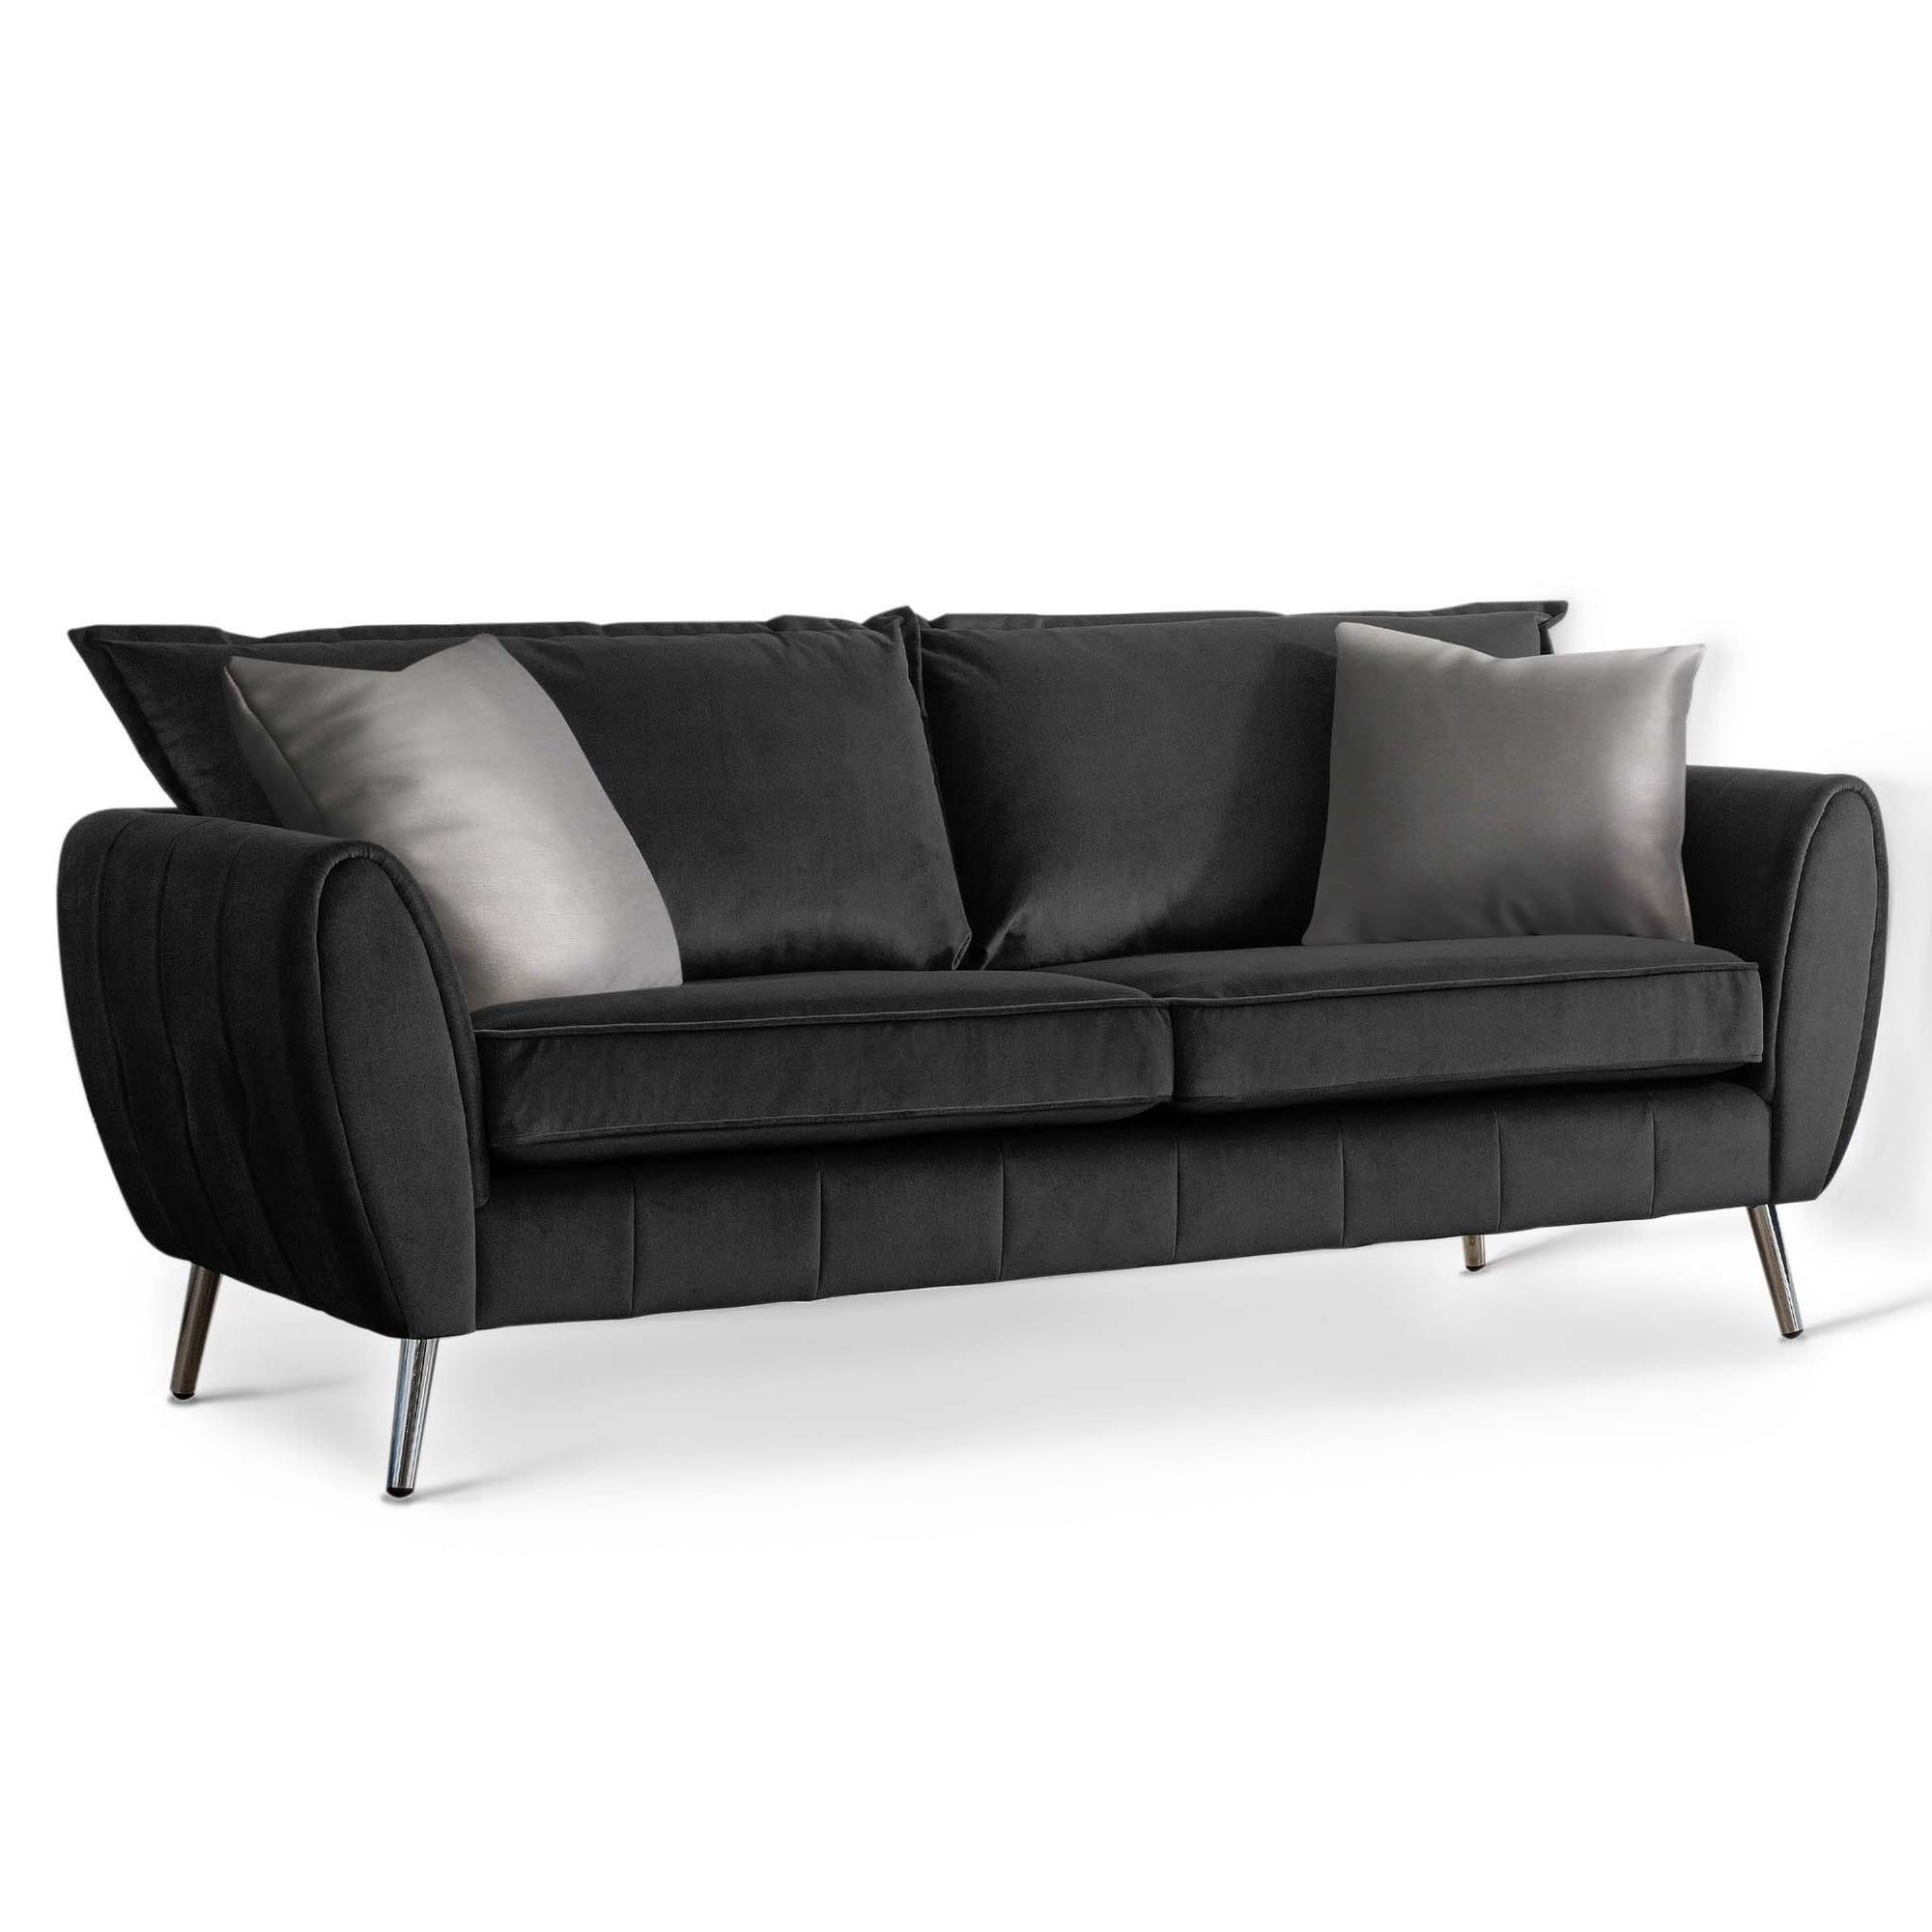 Milano Jet Black 3 Seater Sofa by Roseland Furniture